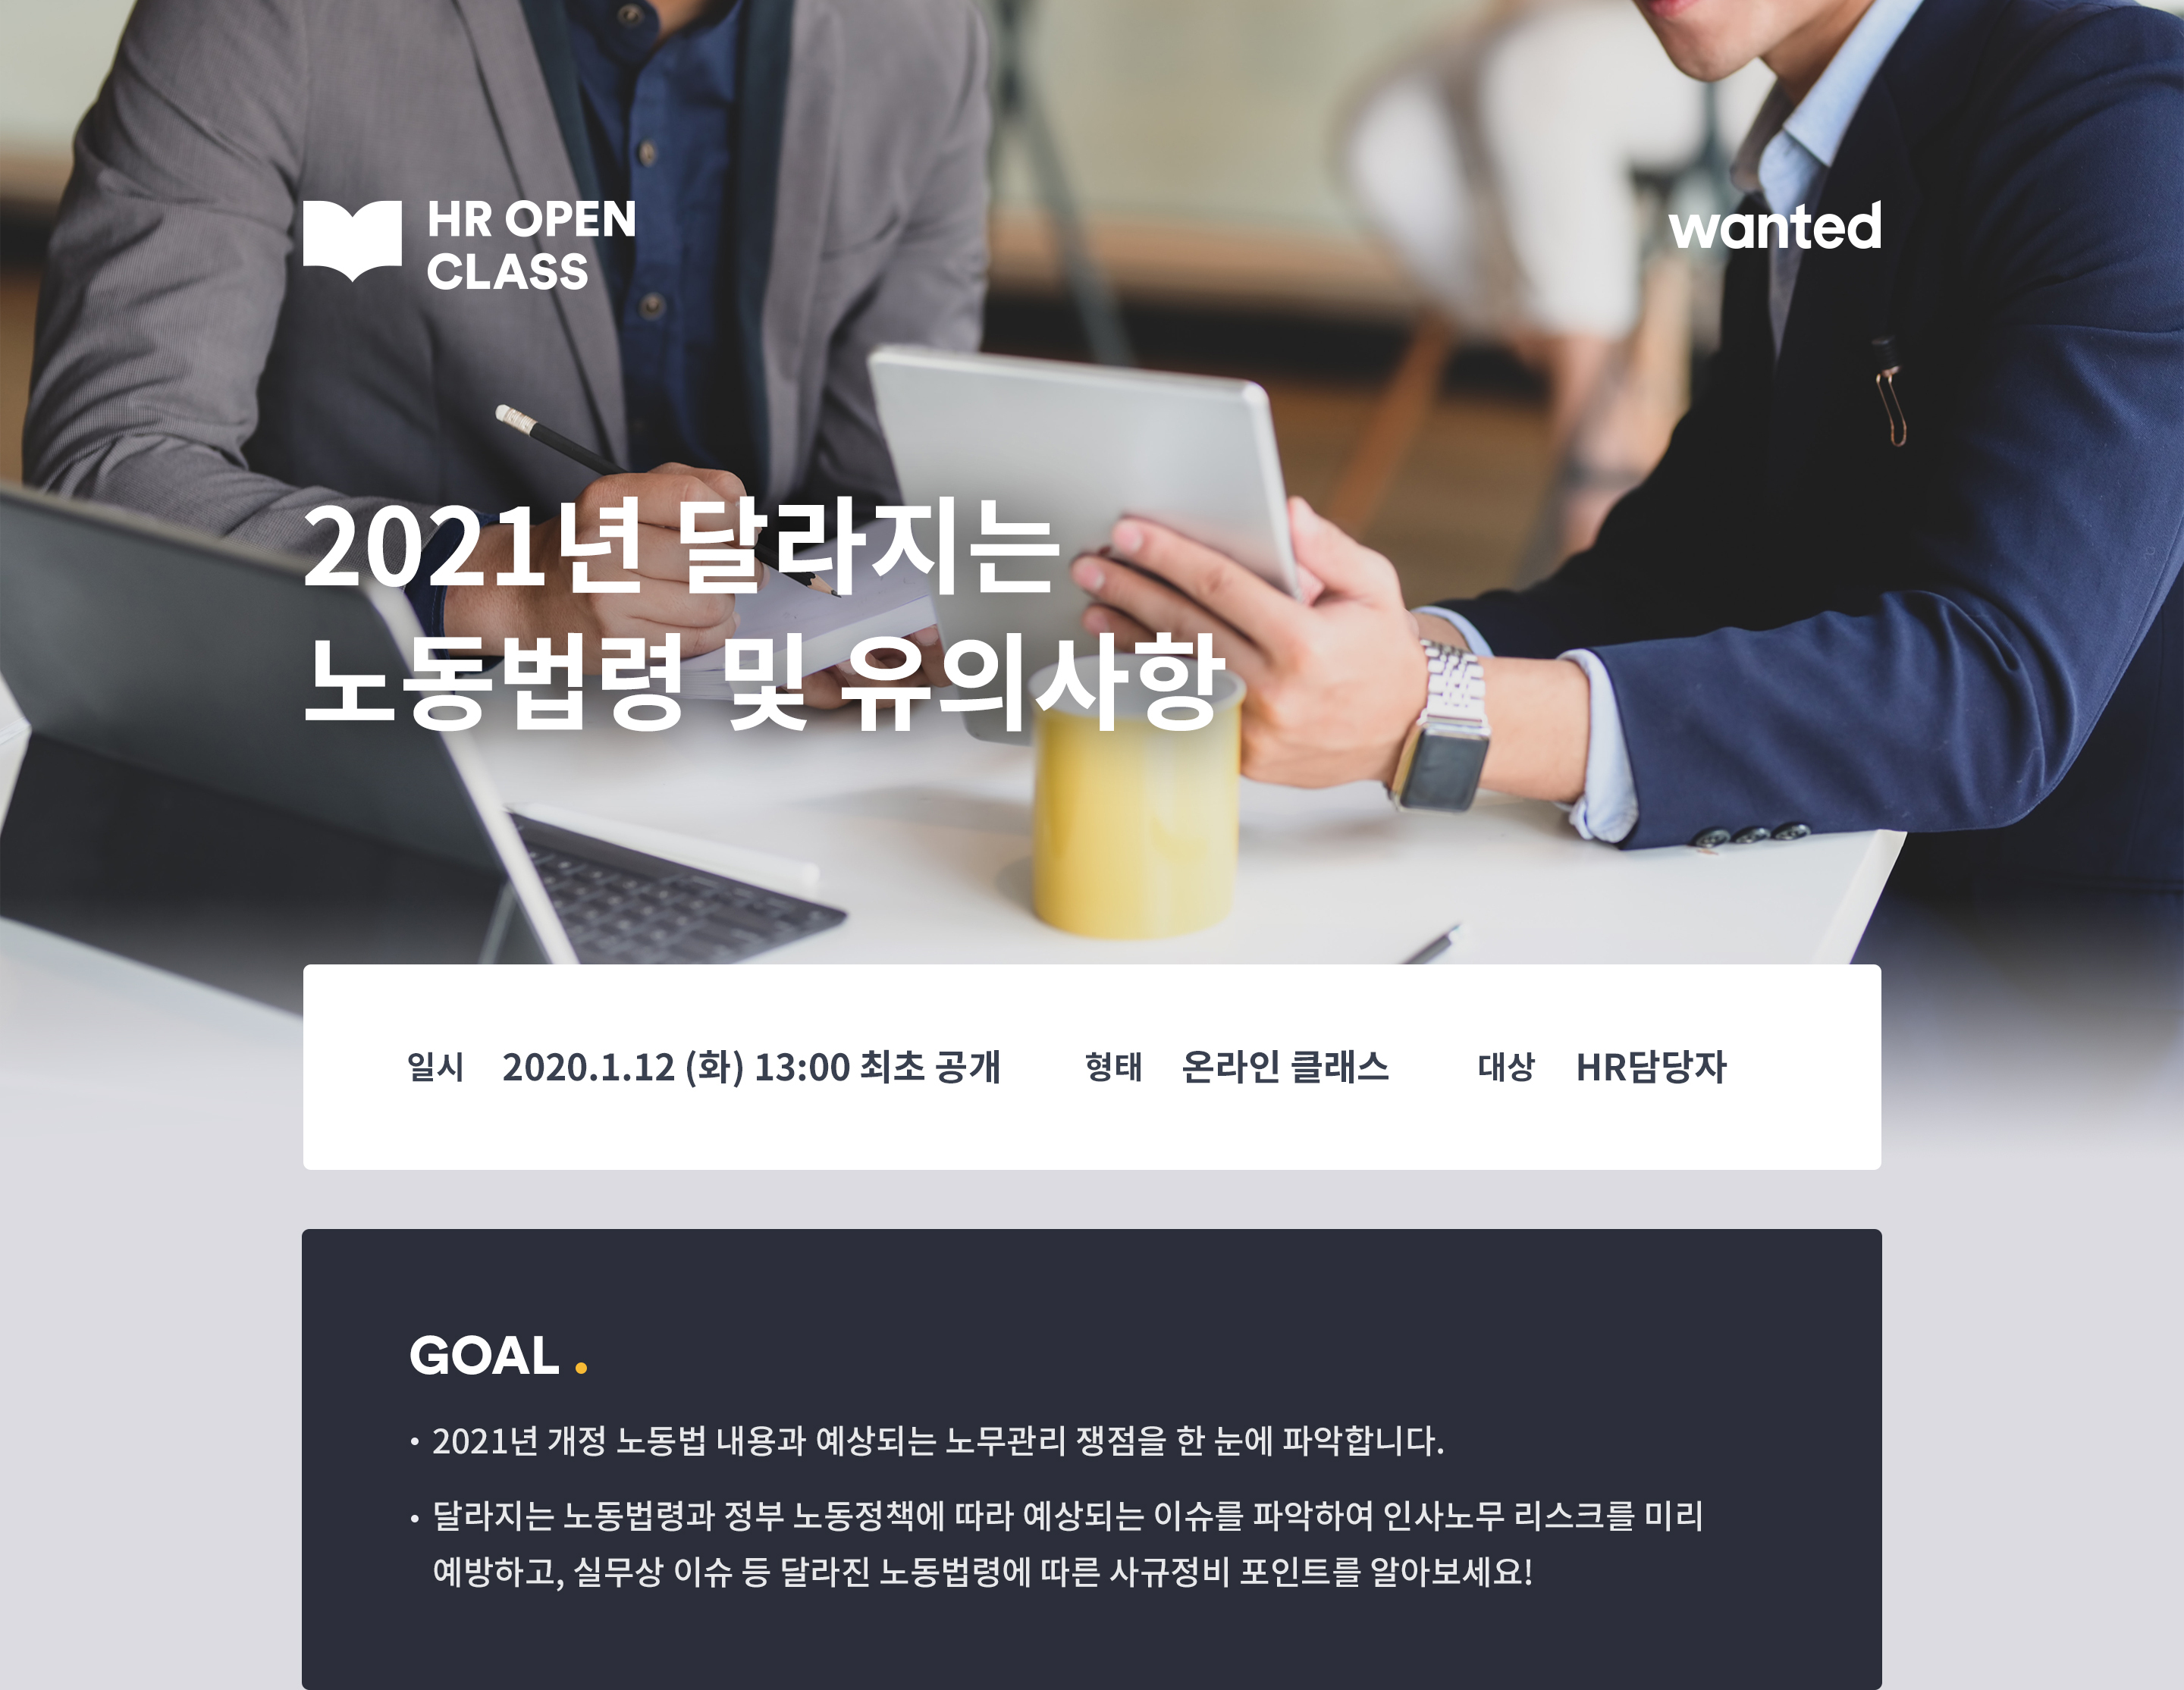 https://static.wanted.co.kr/images/events/1058/79947e3a.jpg